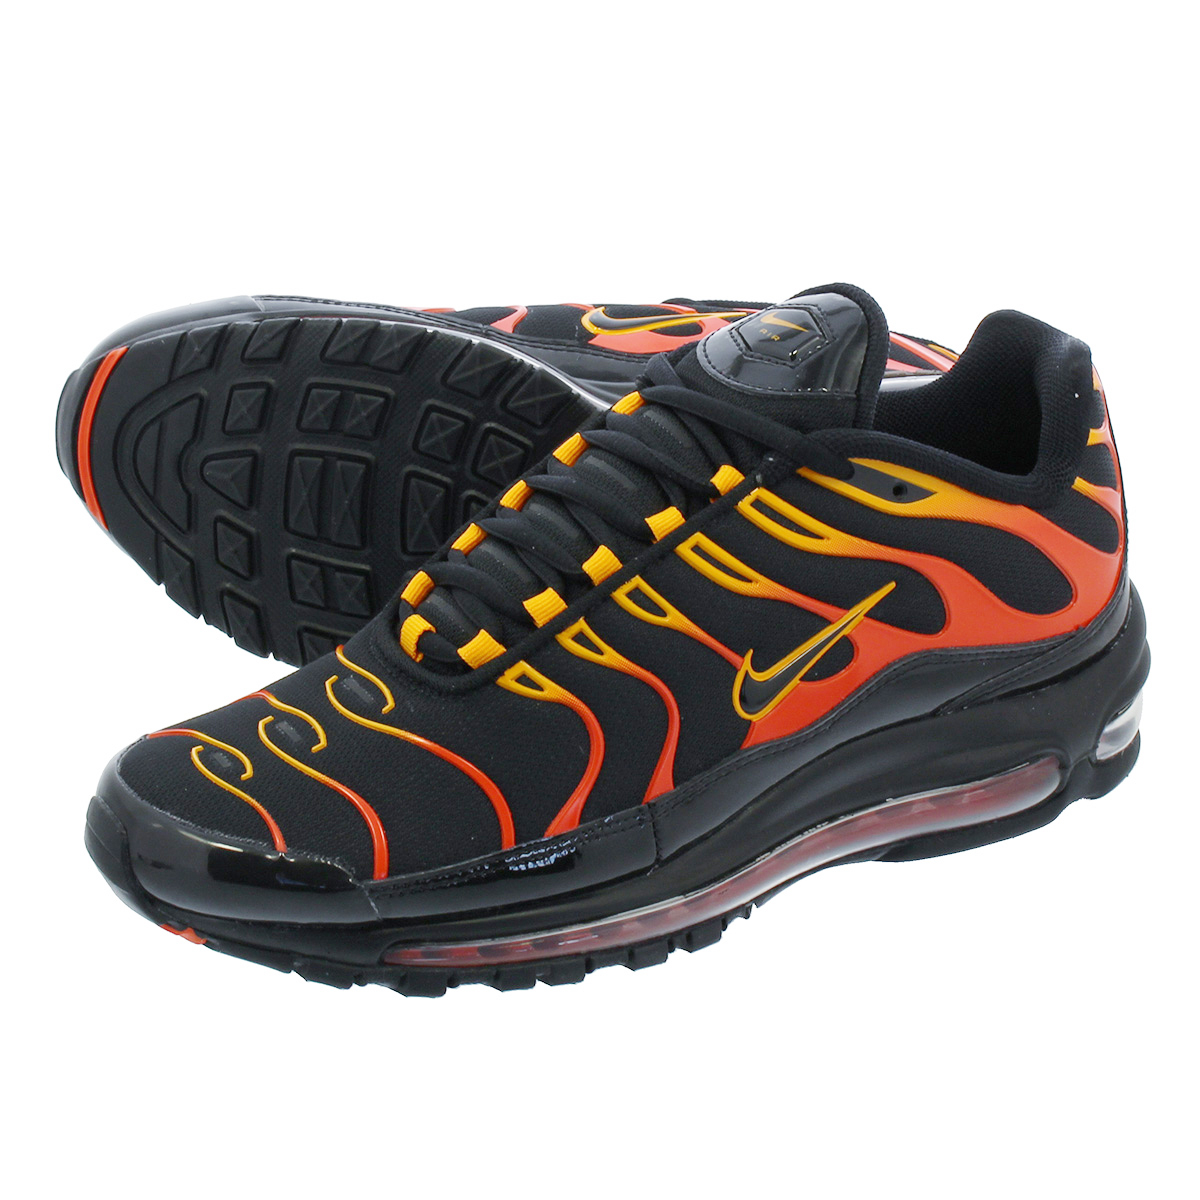 f409b47b56 LOWTEX PLUS: NIKE AIR MAX 97 PLUS Kie Ney AMAX 97 plus BLACK/ENGINE ...